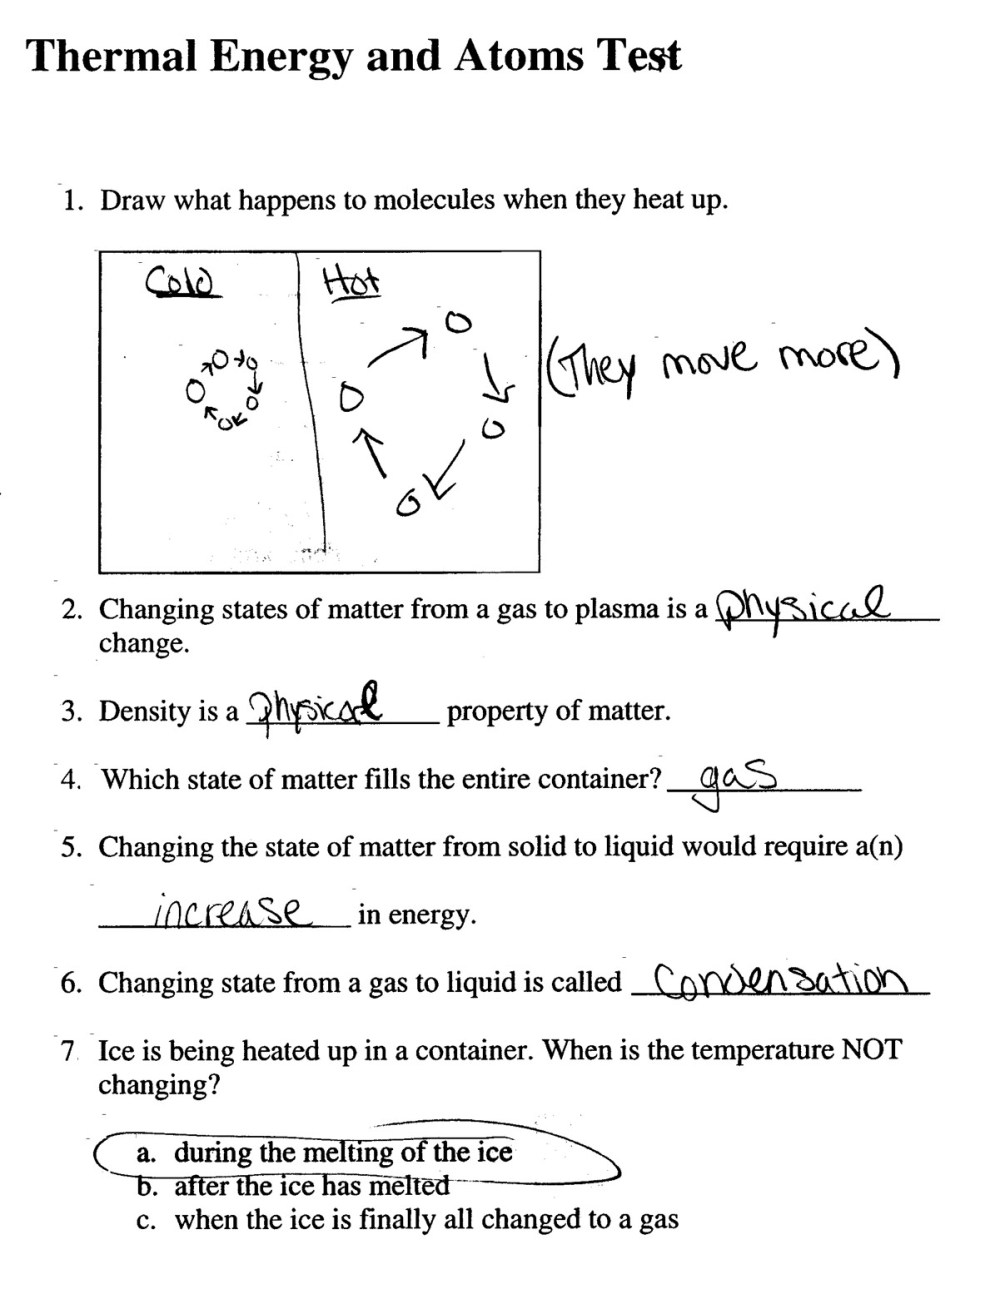 medium resolution of 2007: 3rd Quarter Assignments 6th Grade Physical Science – Crowderious  Maximus